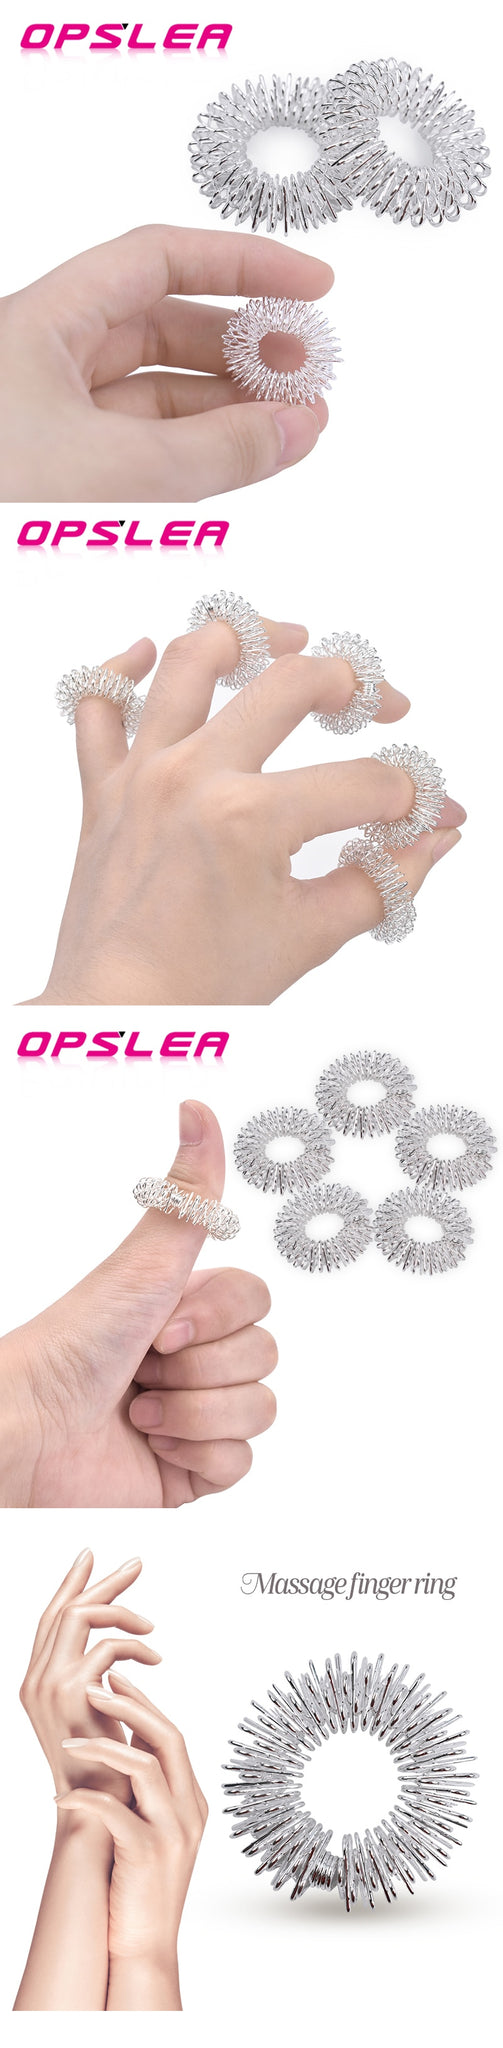 10pcs/Lot Health Care Relaxing Acupressure Massage Finger Ring